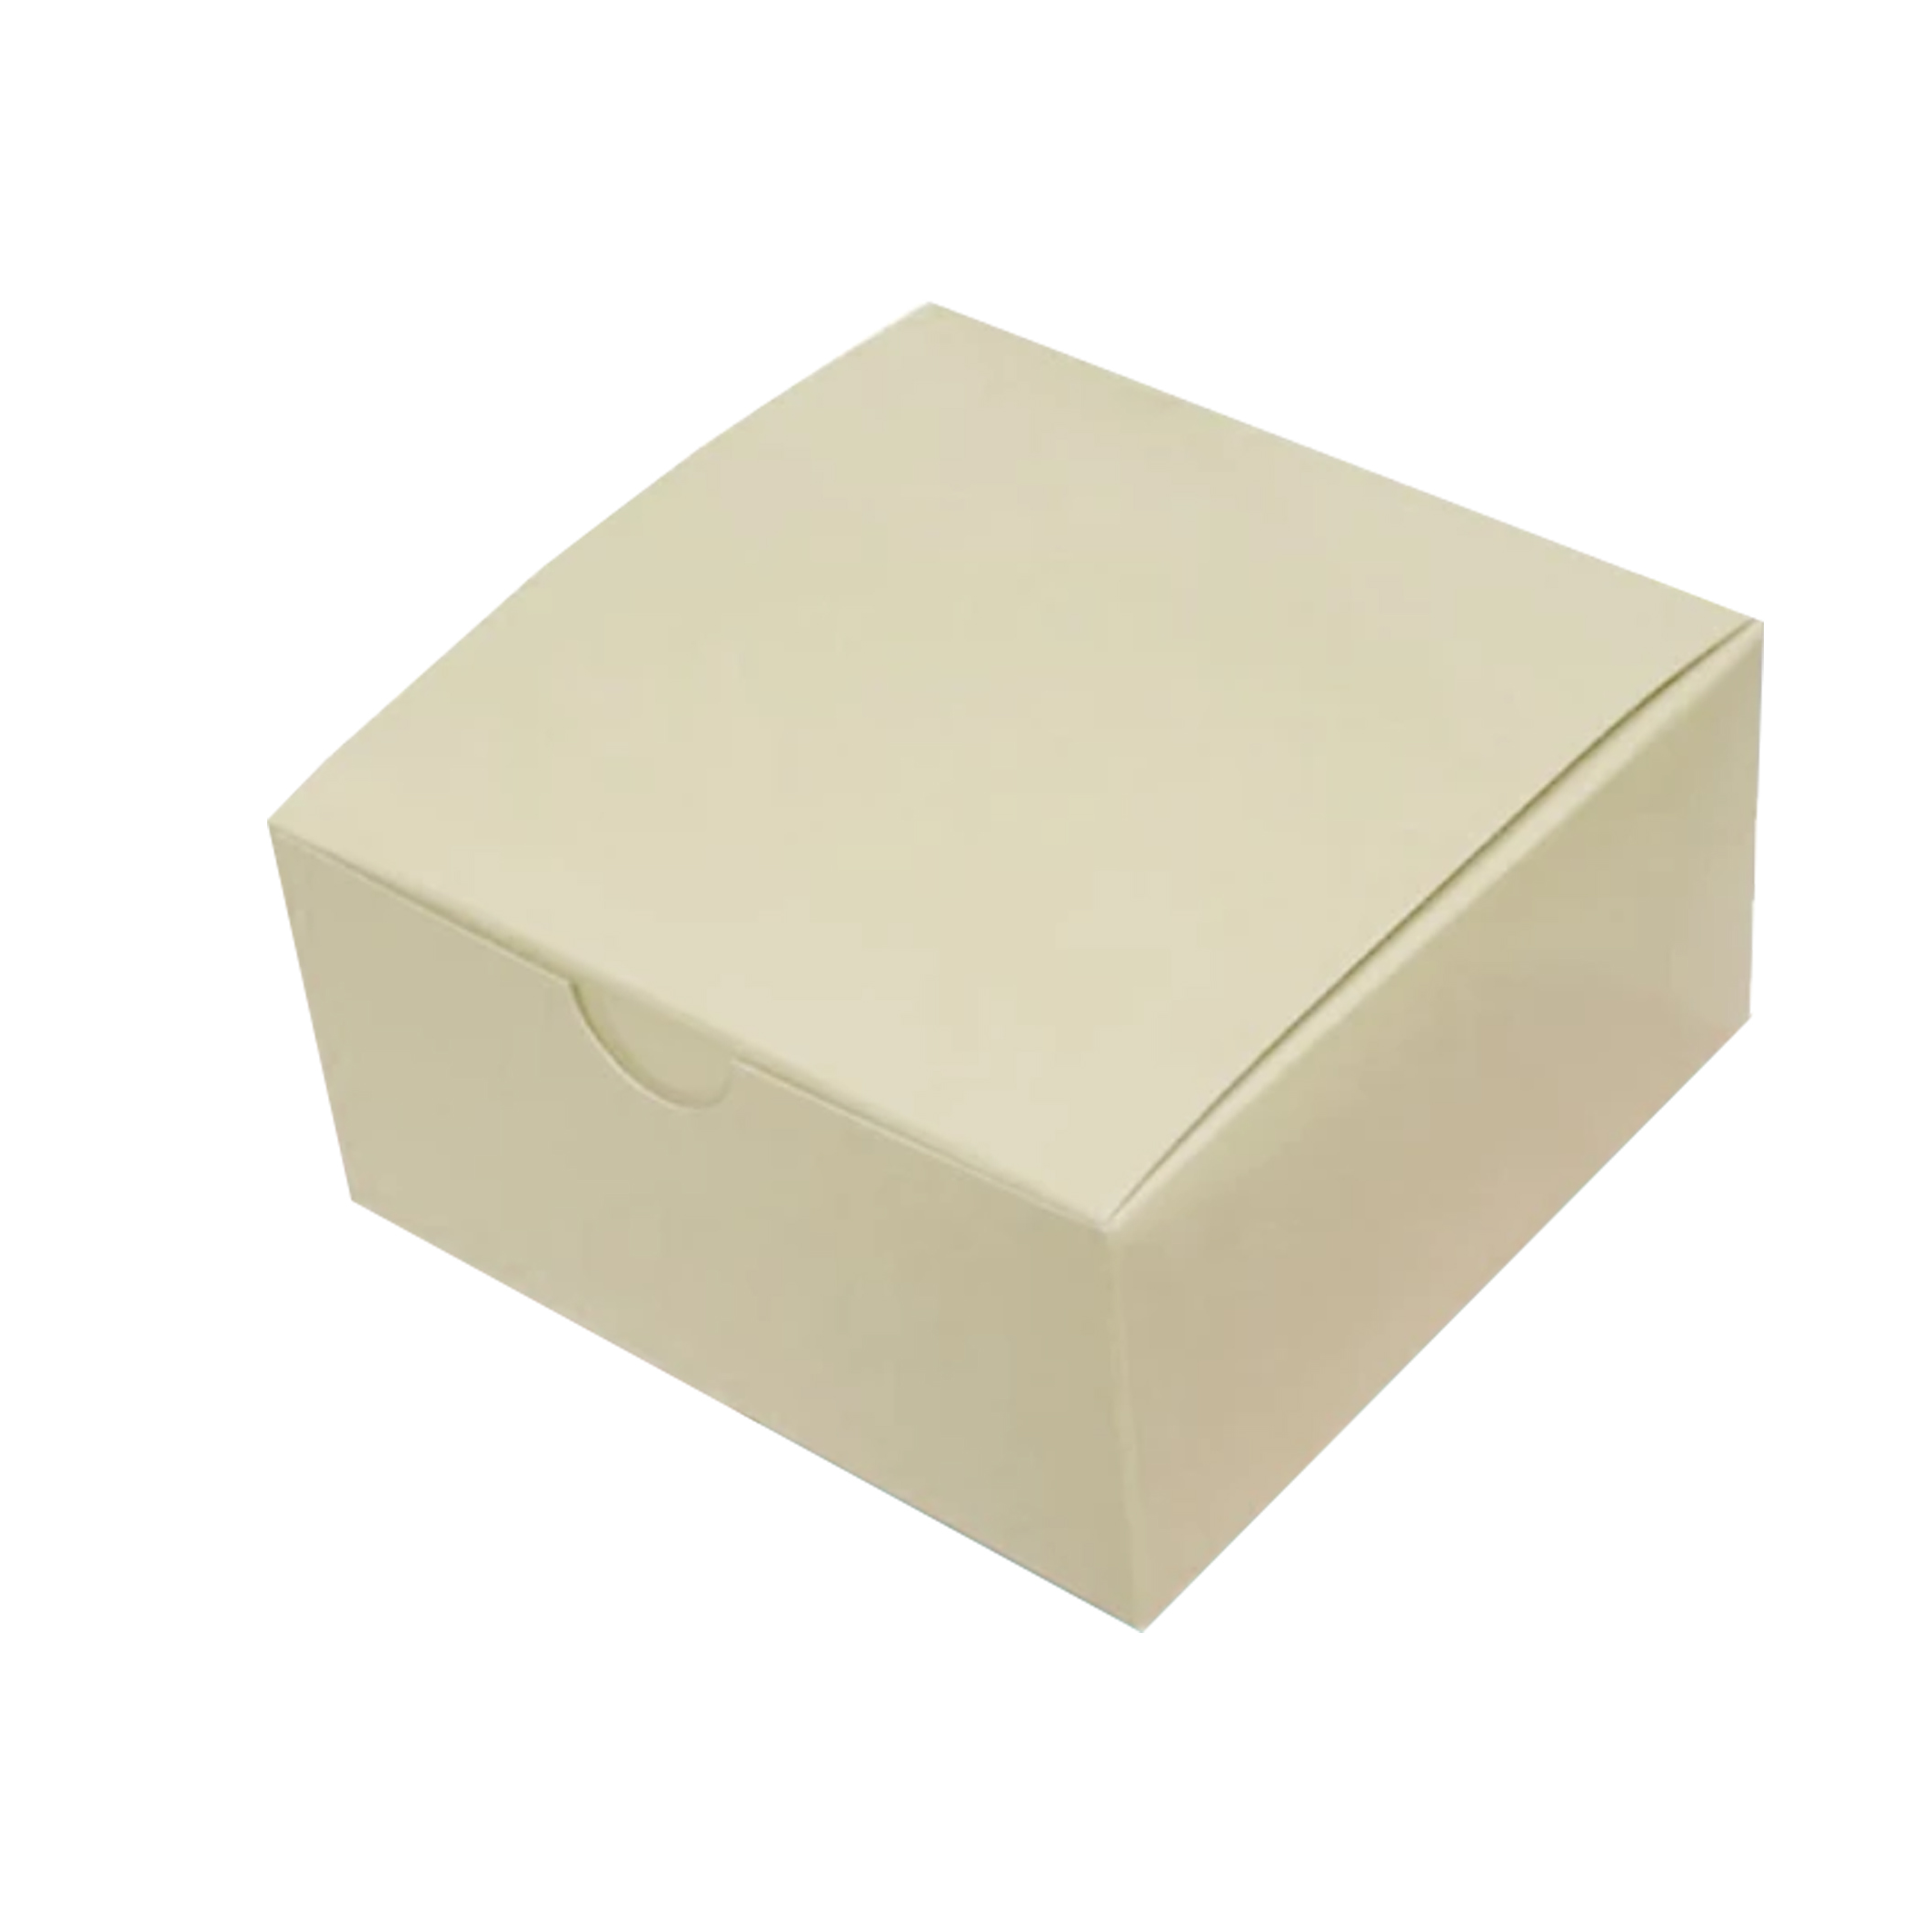 Ivory Packaging Food & Beverage Packaging Favor Boxes Mini Cake BoxesでBulk 12 Inch Cake